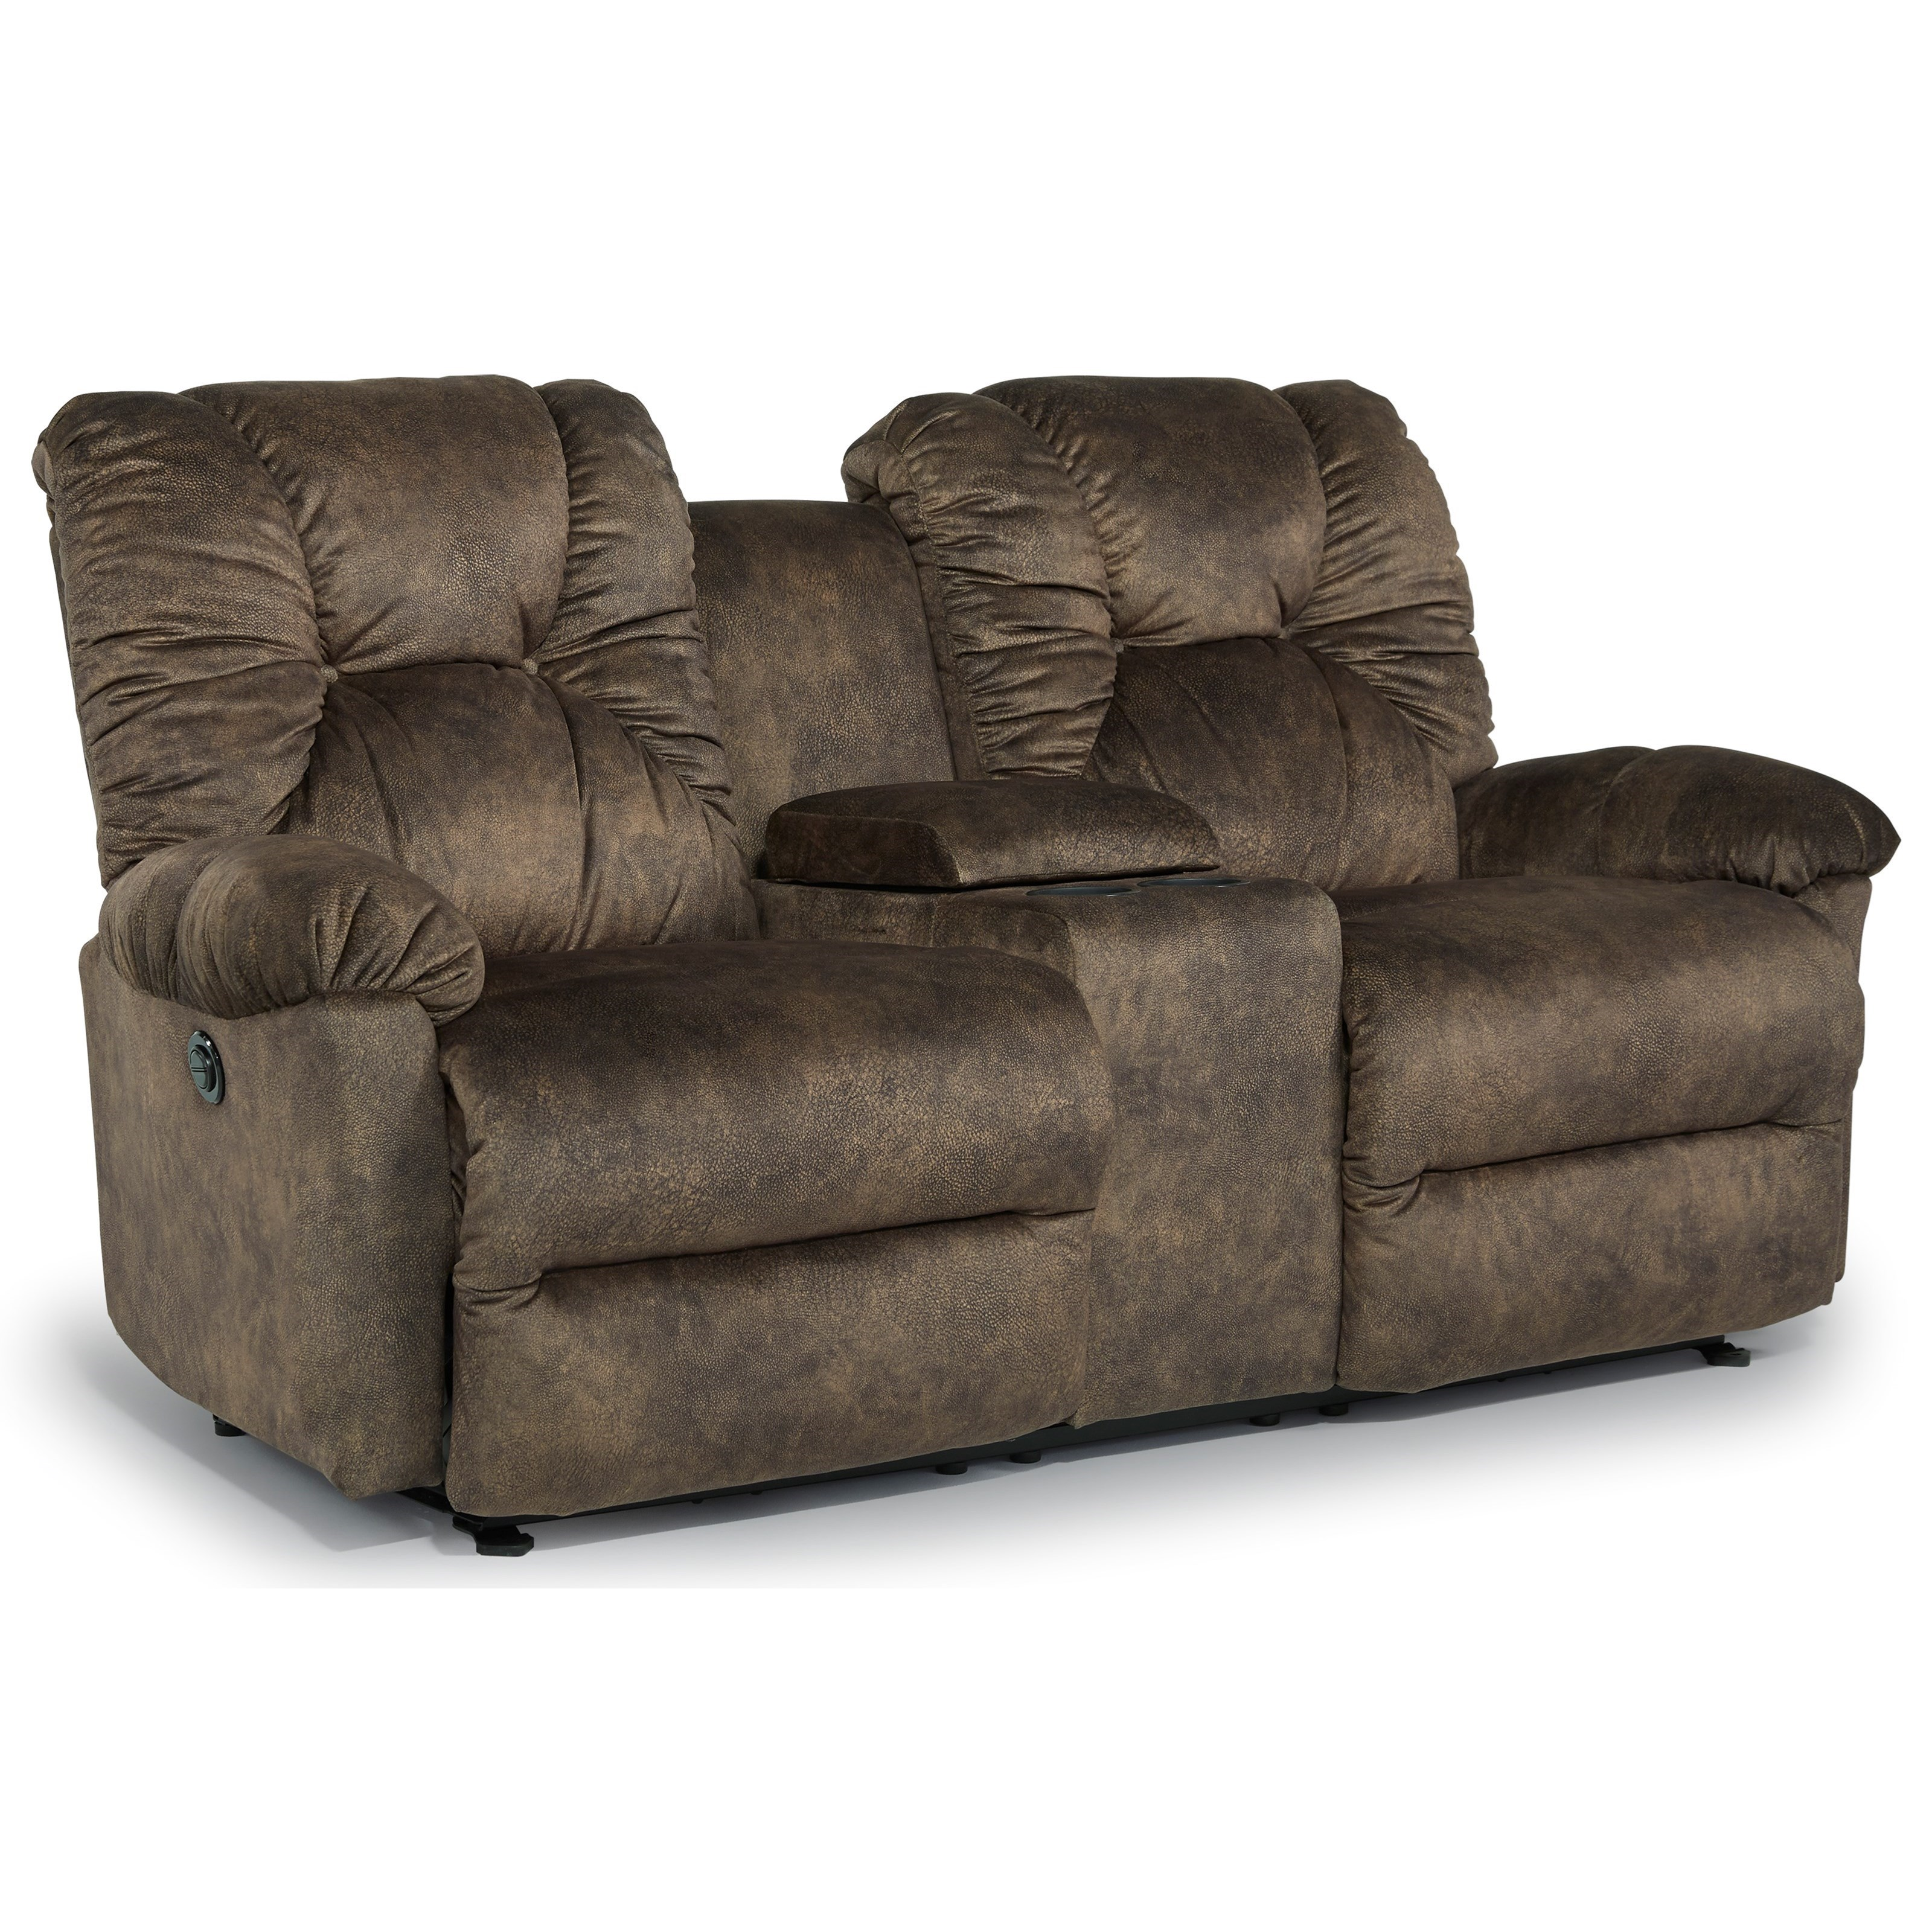 Casual Space Saver Reclining Loveseat With Cupholder Storage Console Recliner Cup Holder And Storage I53